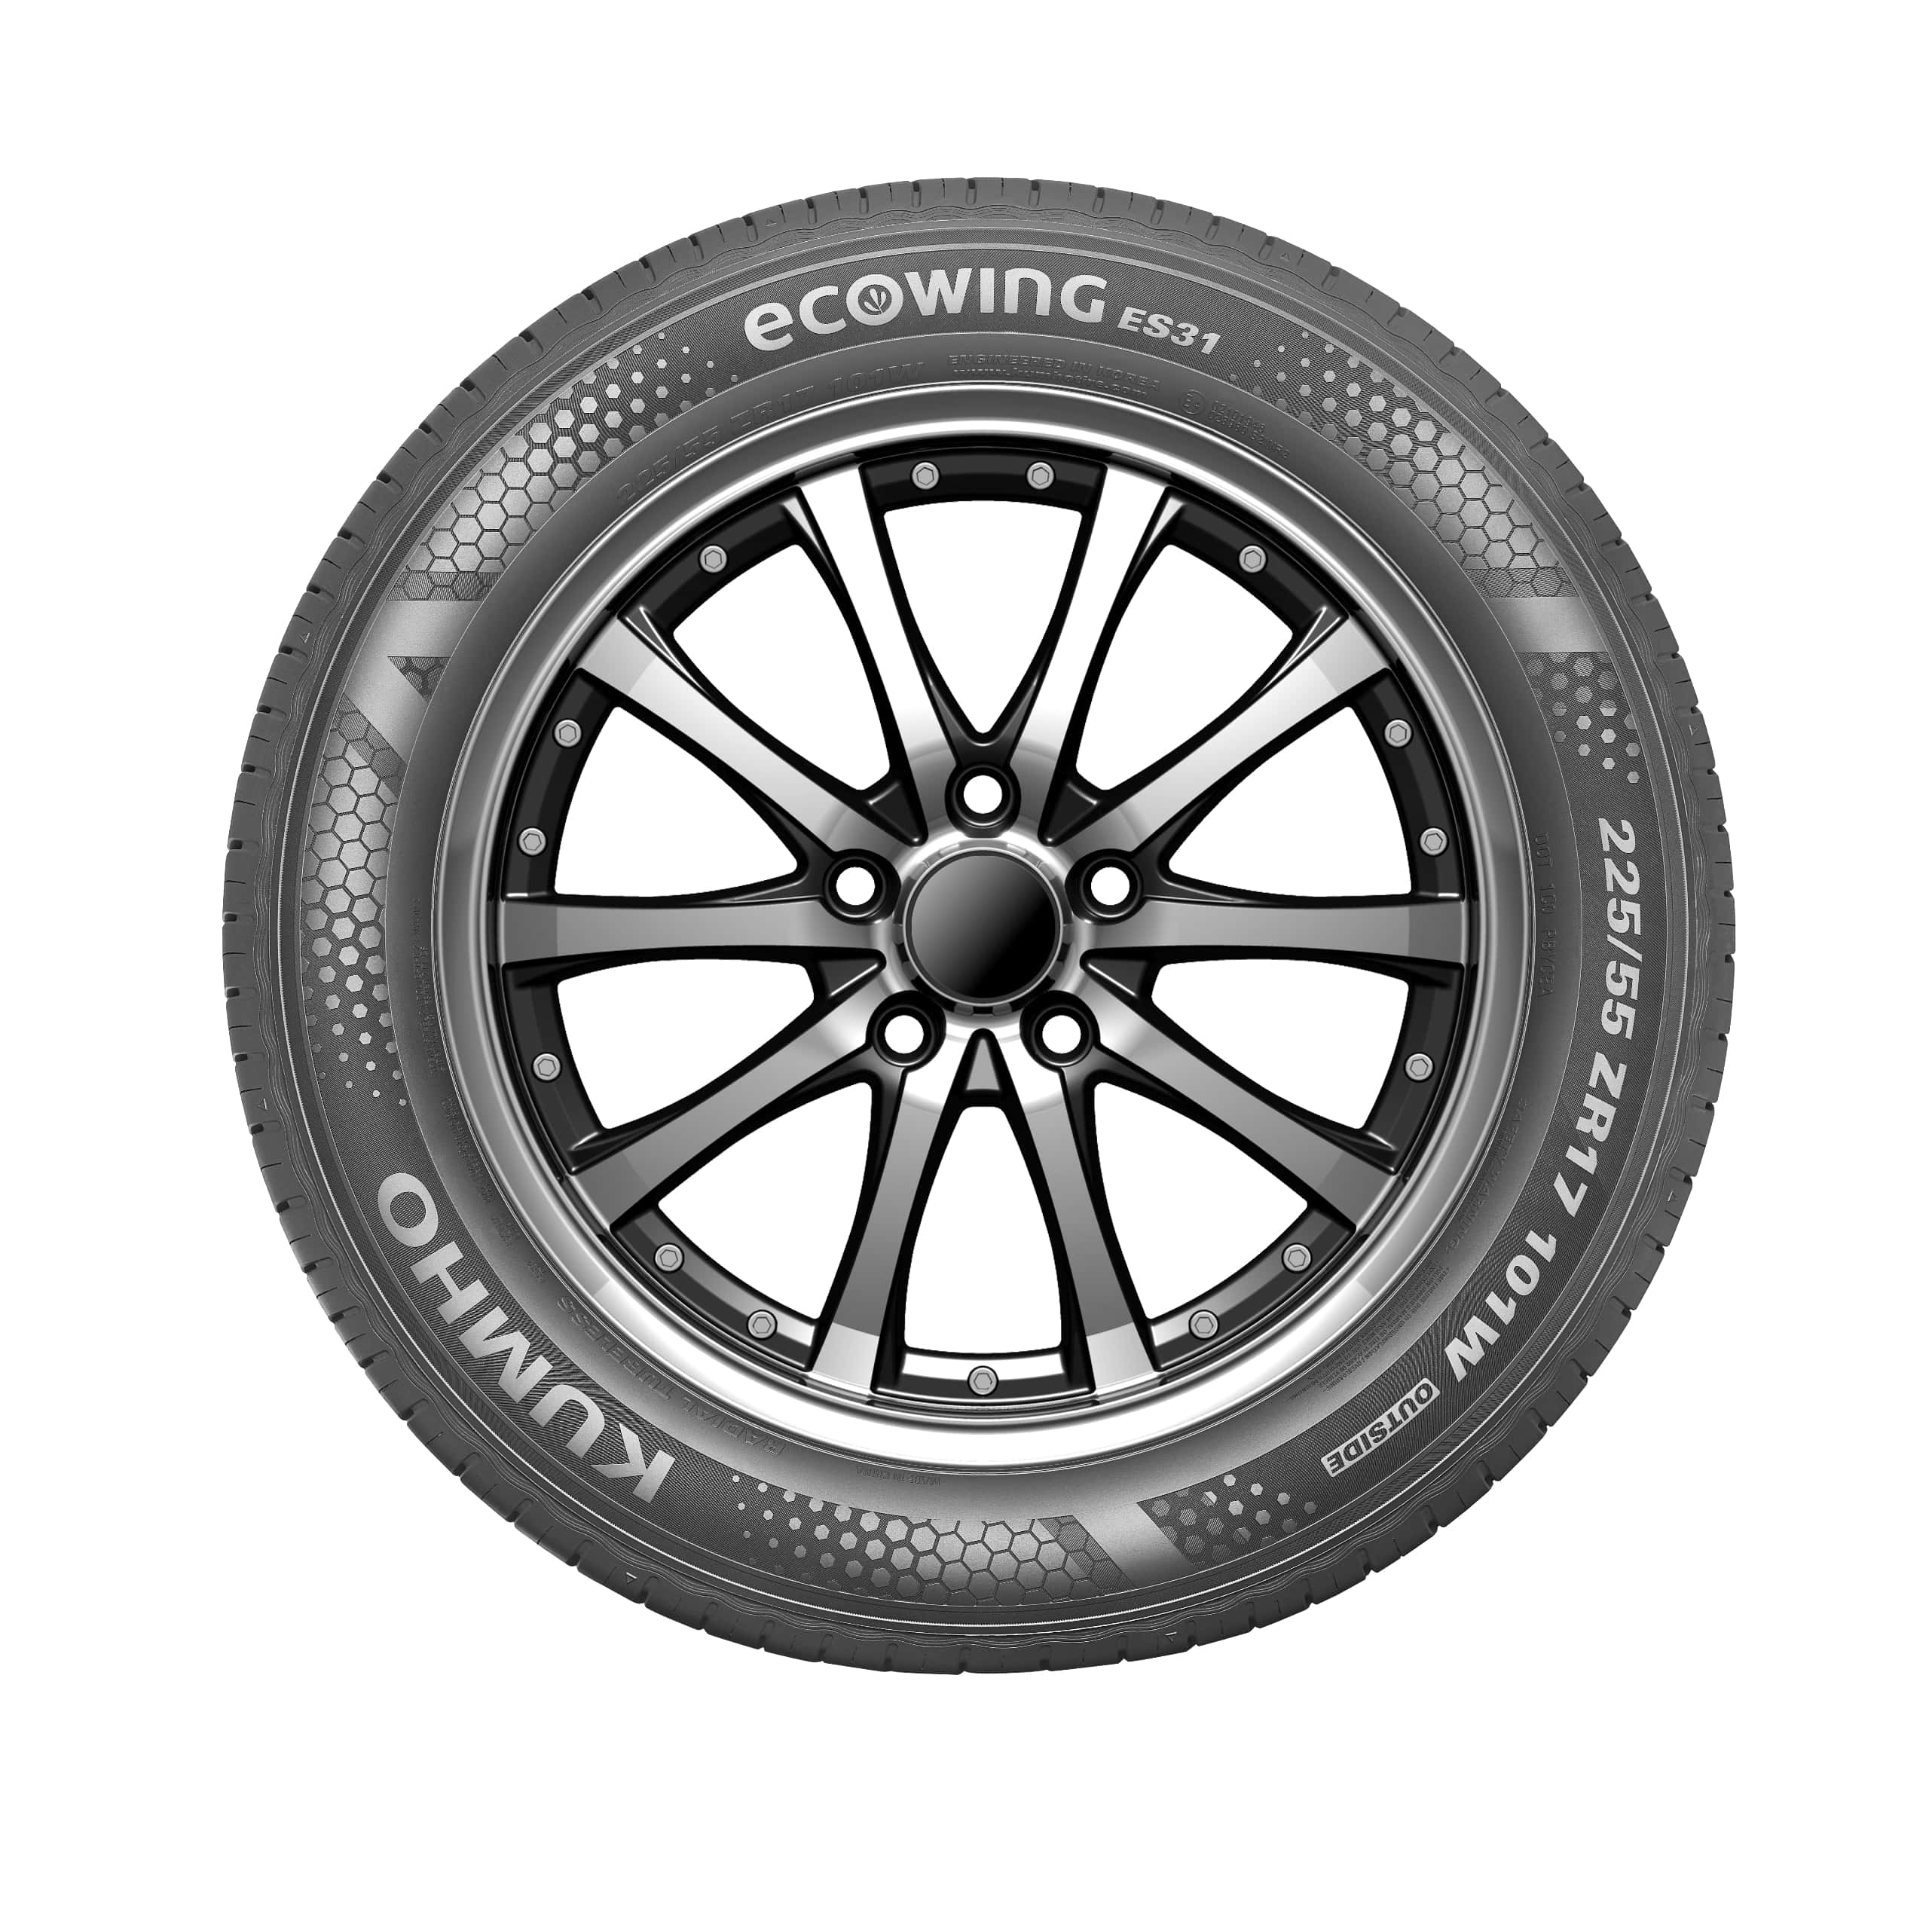 Kumho's New ECOWING ES31 Tyre